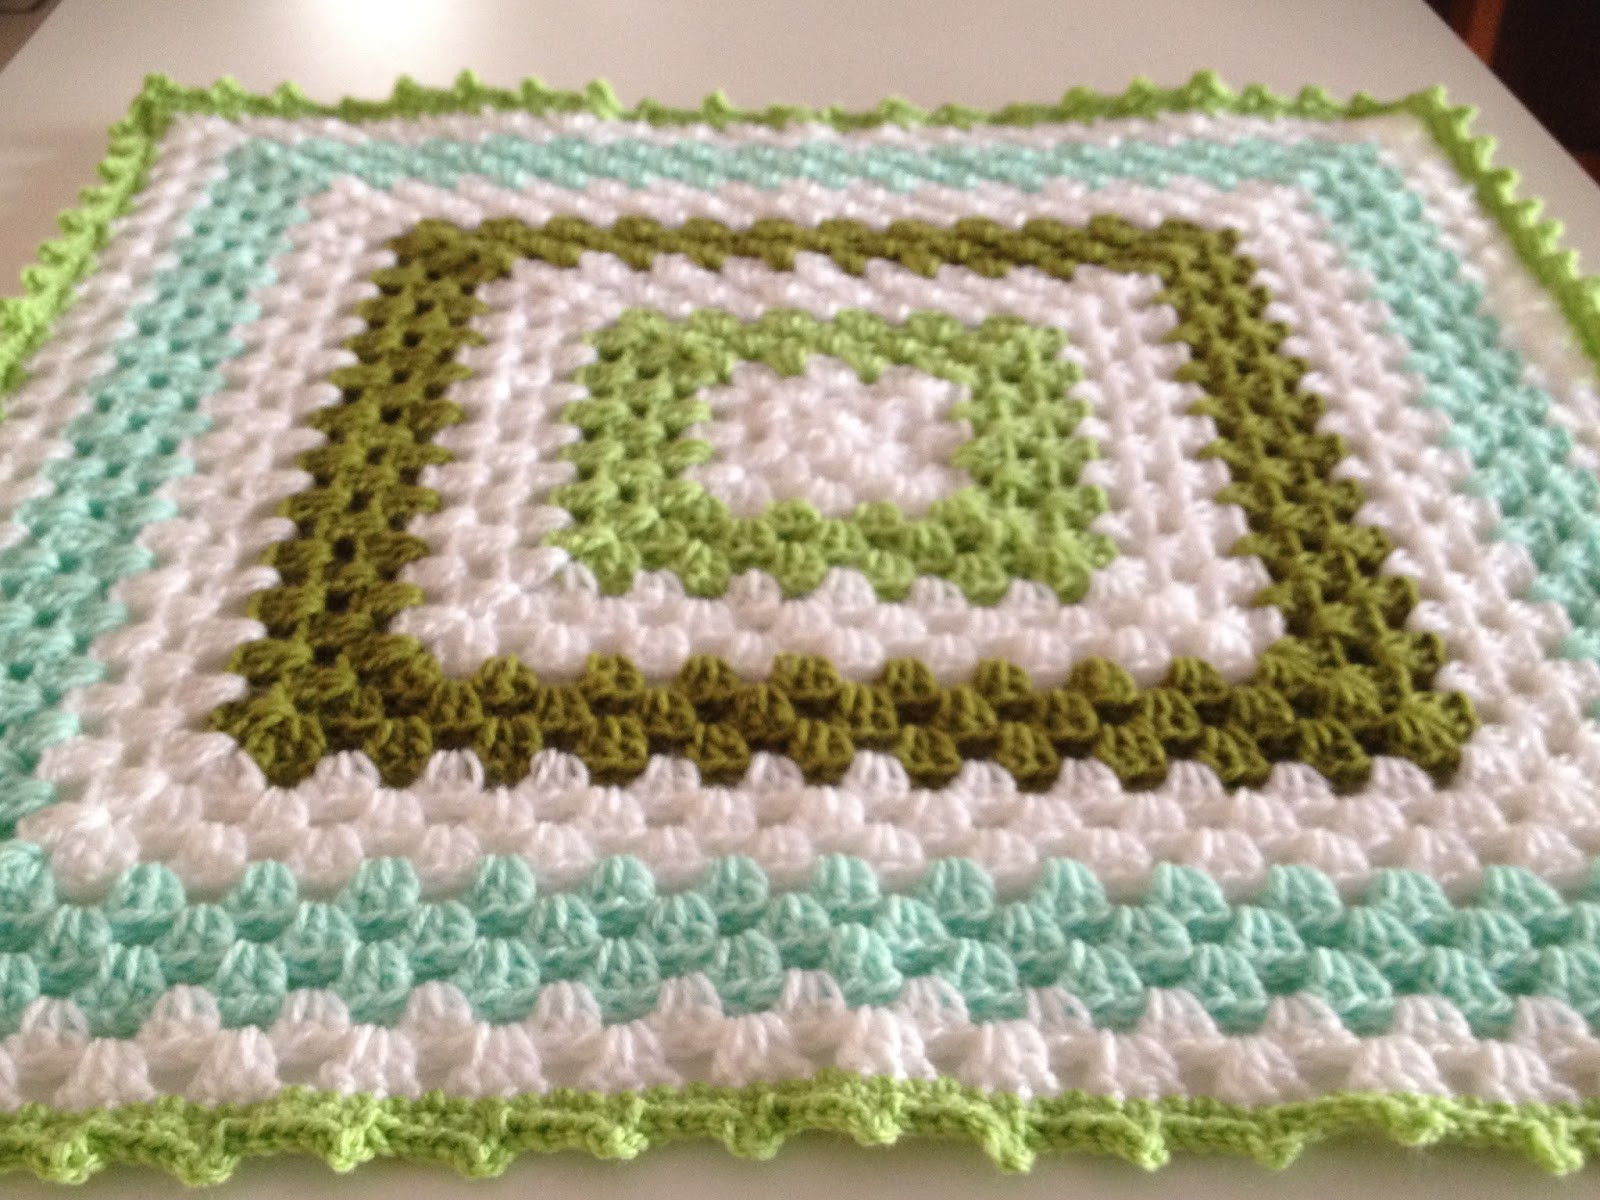 Inspirational Created for You and Me Crochet Granny Square Baby Blanket Granny Square Baby Blanket Of Amazing 41 Pictures Granny Square Baby Blanket